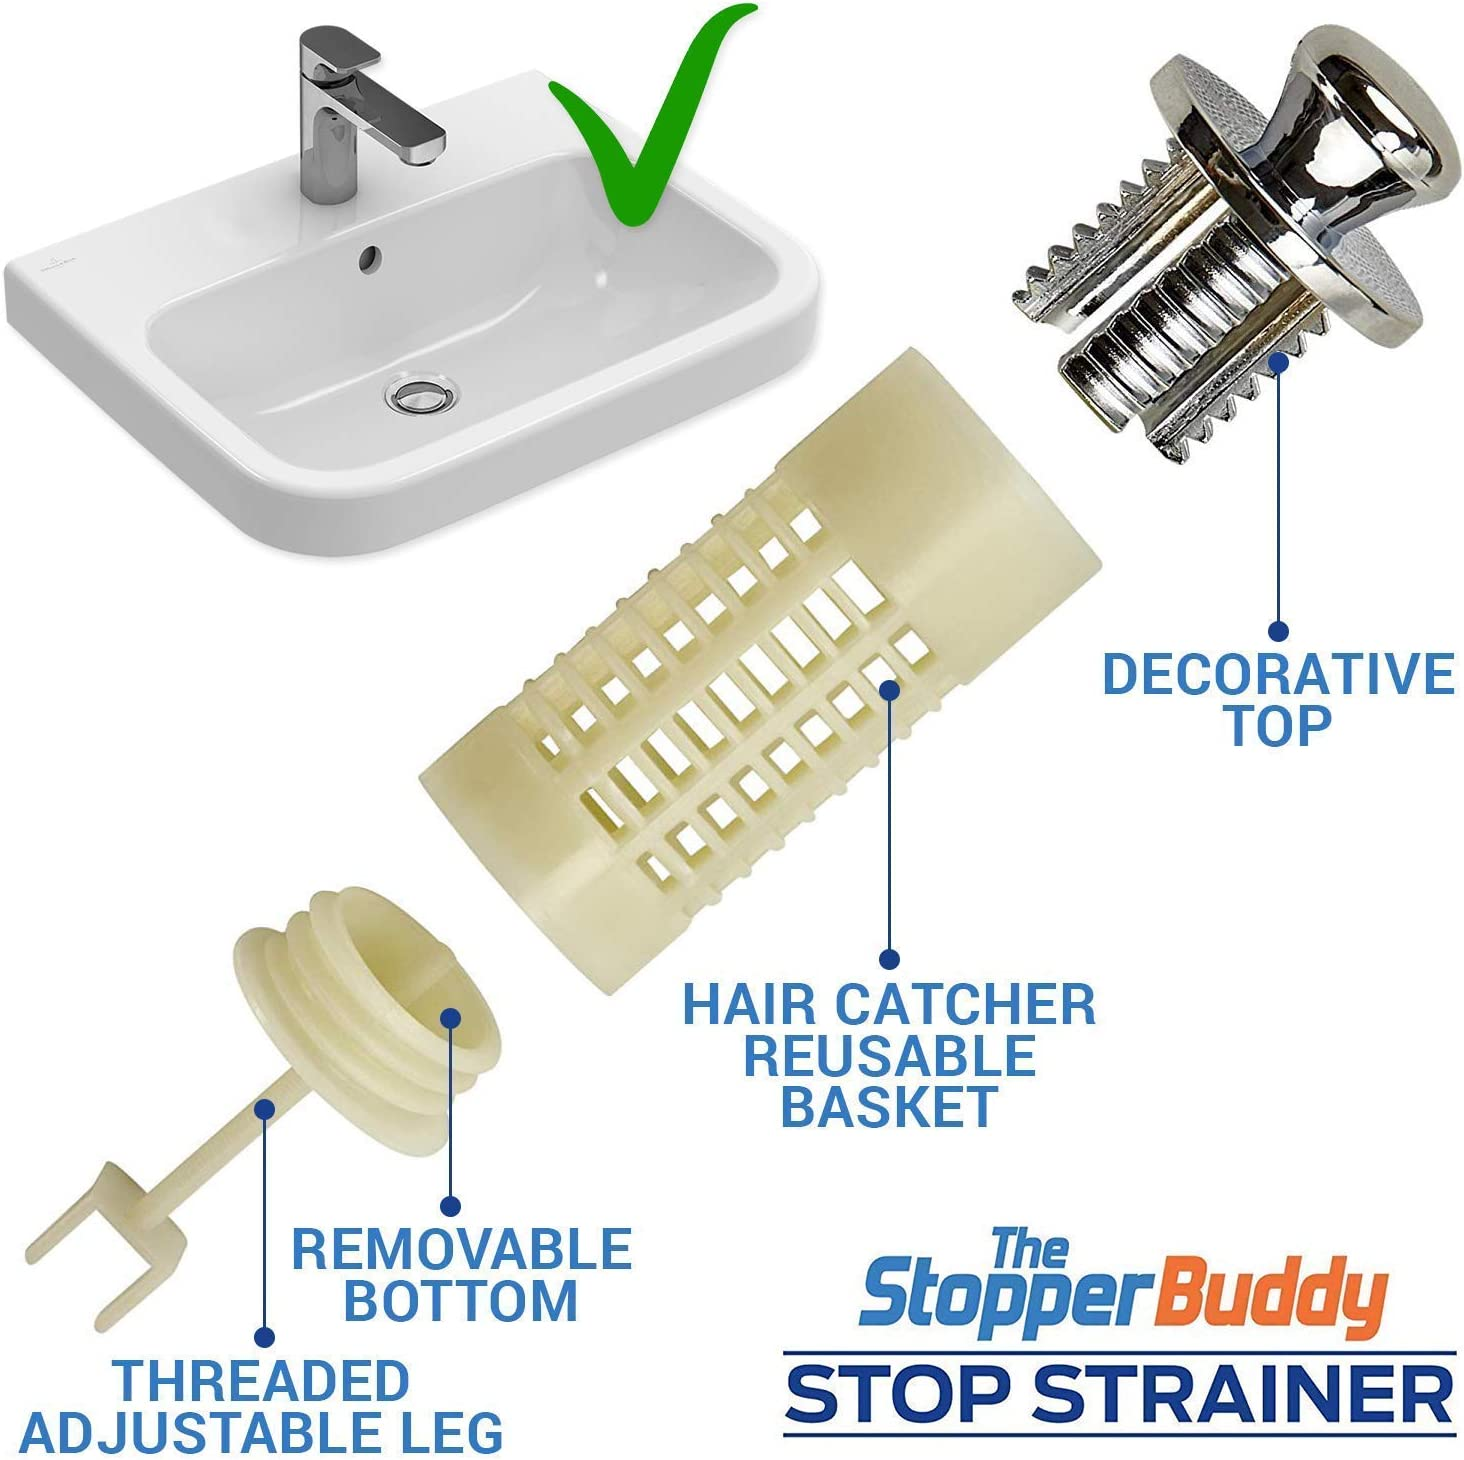 Amazon Com The Stopper Buddy Strainer Bathroom Sink Drain Hair Catcher For Drains With Pop Up Stopper Universal Drain Protector With Patented Strainer Baskets Filter Reusable Easy To Install Clean